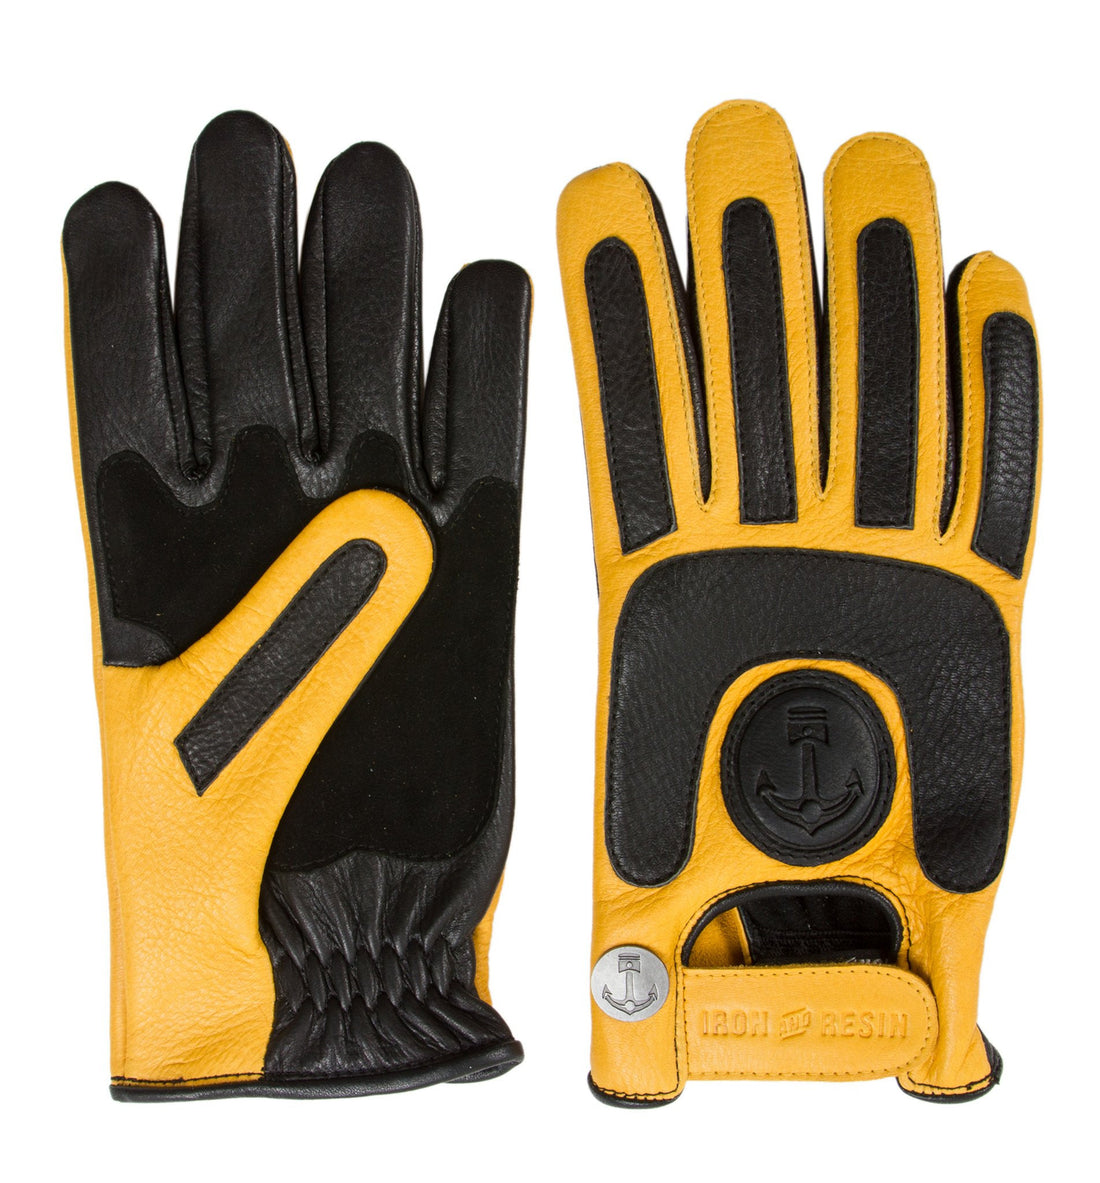 Elsinore Glove - Gloves - Iron and Resin